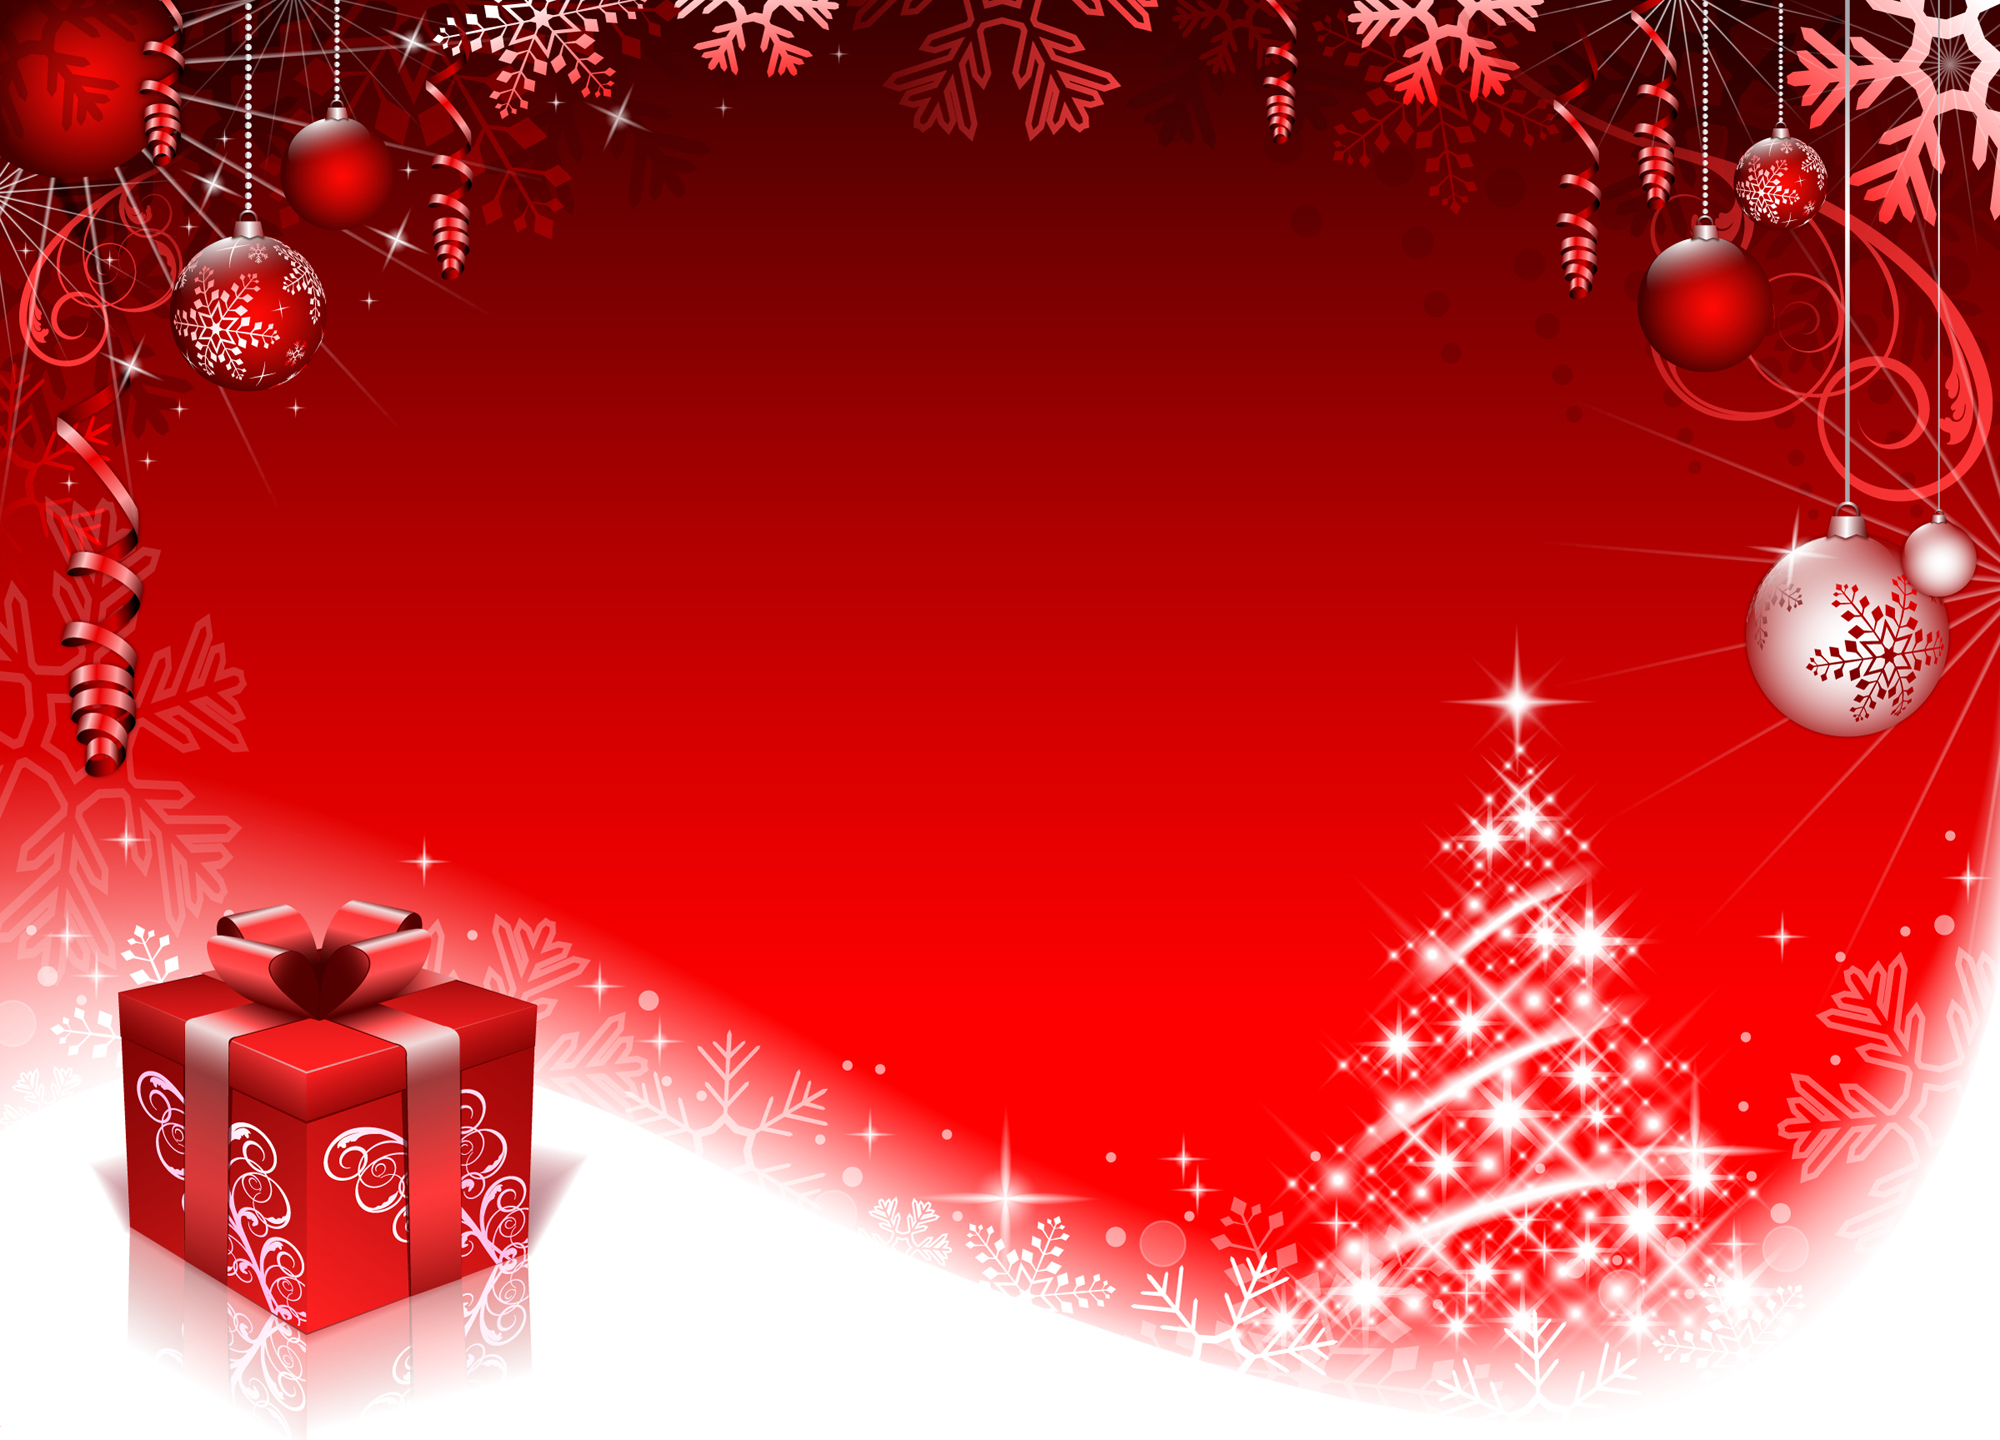 Download Christmas Backgrounds Free